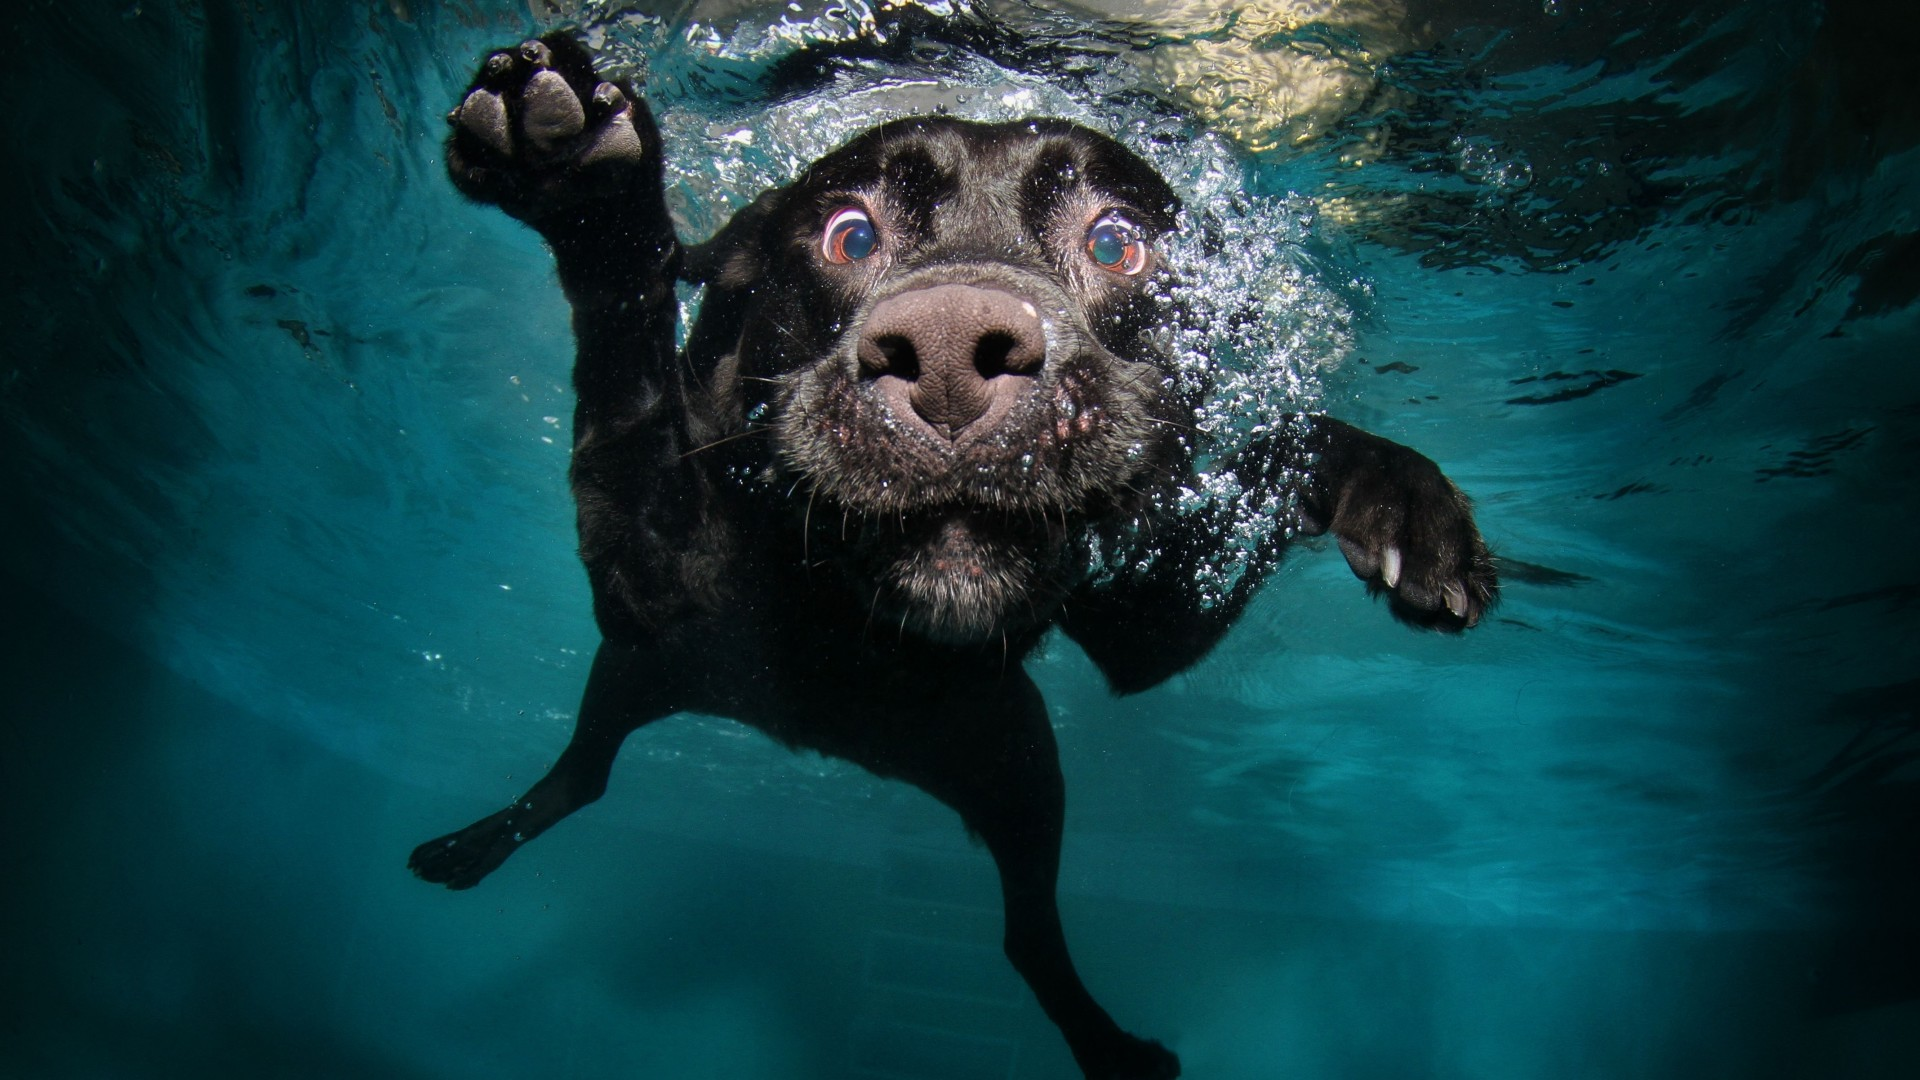 Dog, 5k, 4k wallpaper, puppy, black, underwater, funny, animal, pet, water bubbles (horizontal)